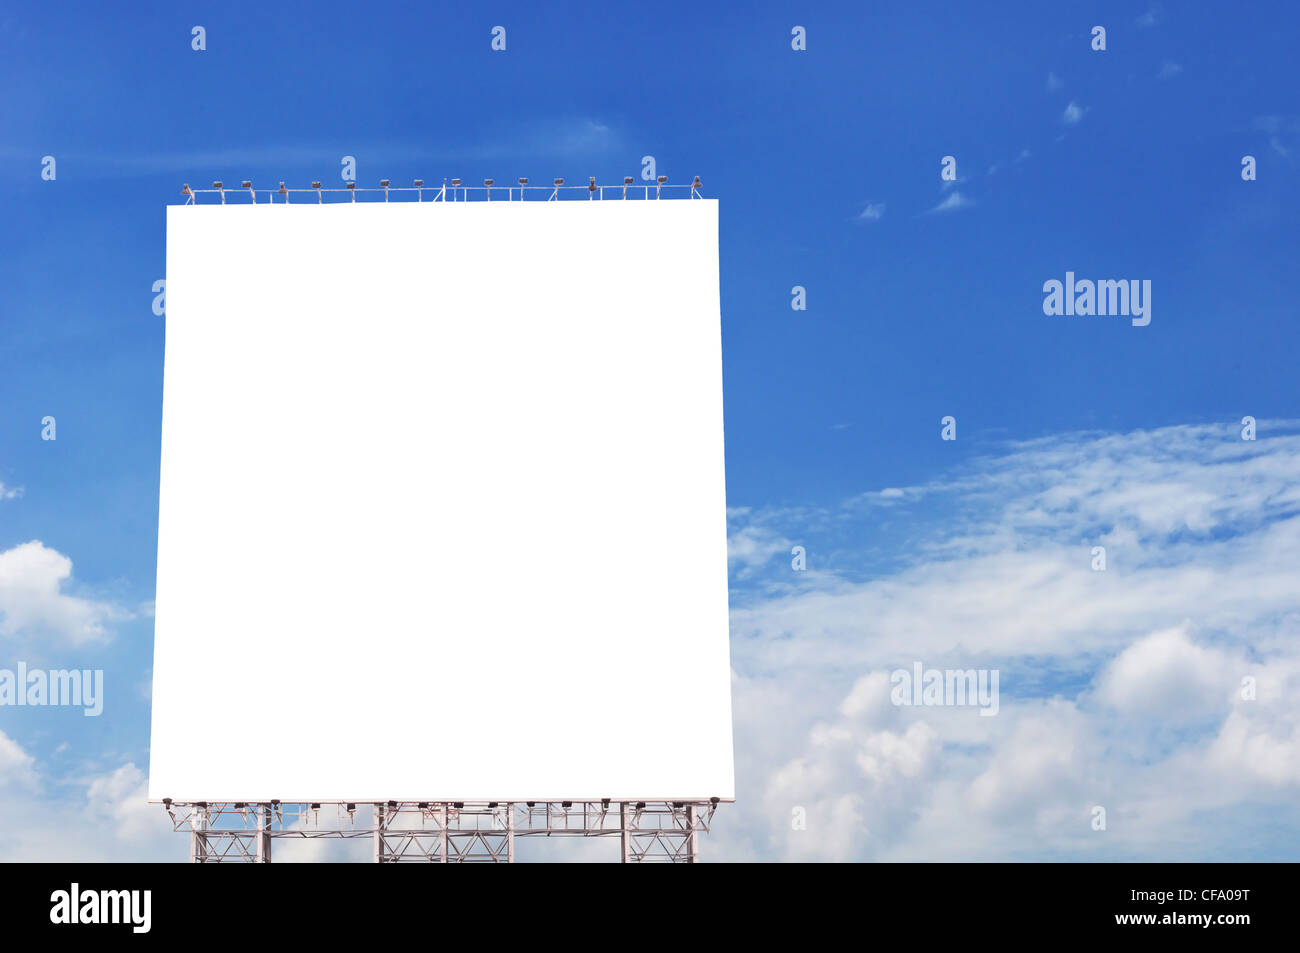 empty billboard with blue sky backgrounds. - Stock Image